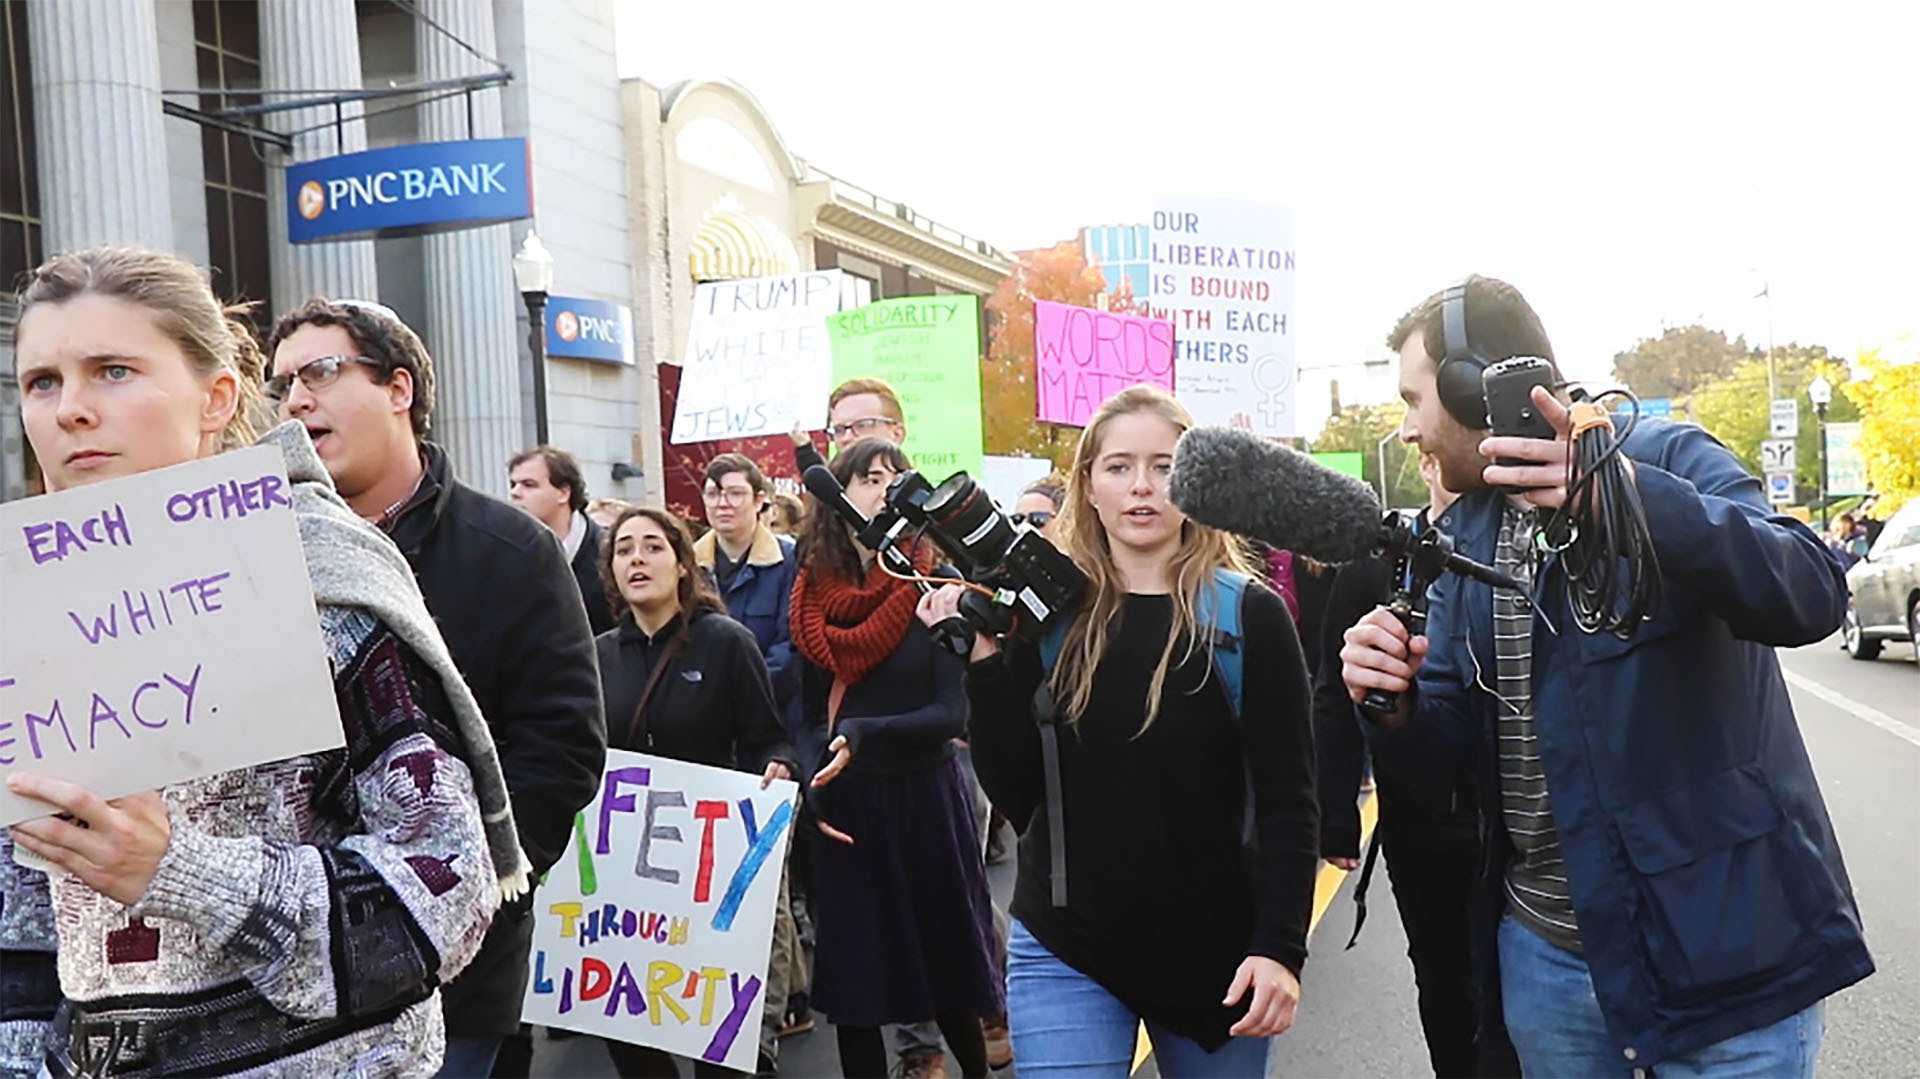 While researching for their senior thesis, Director McKinleigh Lair and Producer Josh Jacobius observed protests in Pittsburgh, PA following the Tree of Life synagogue shooting.